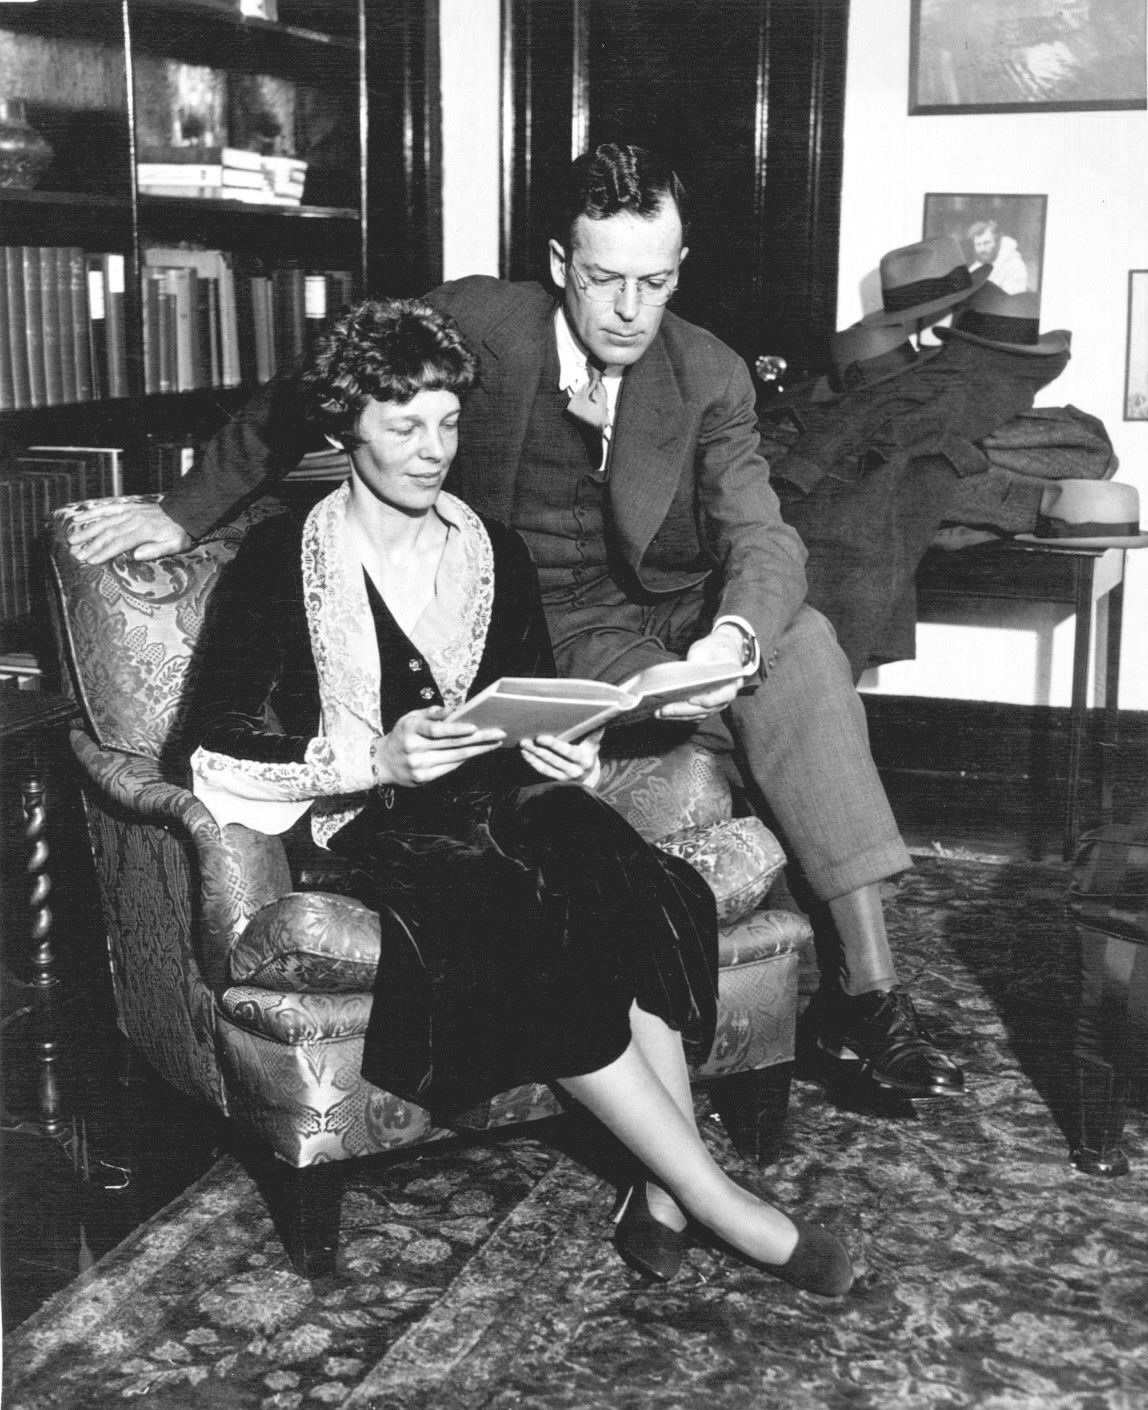 Earhart and Putnam in 1931